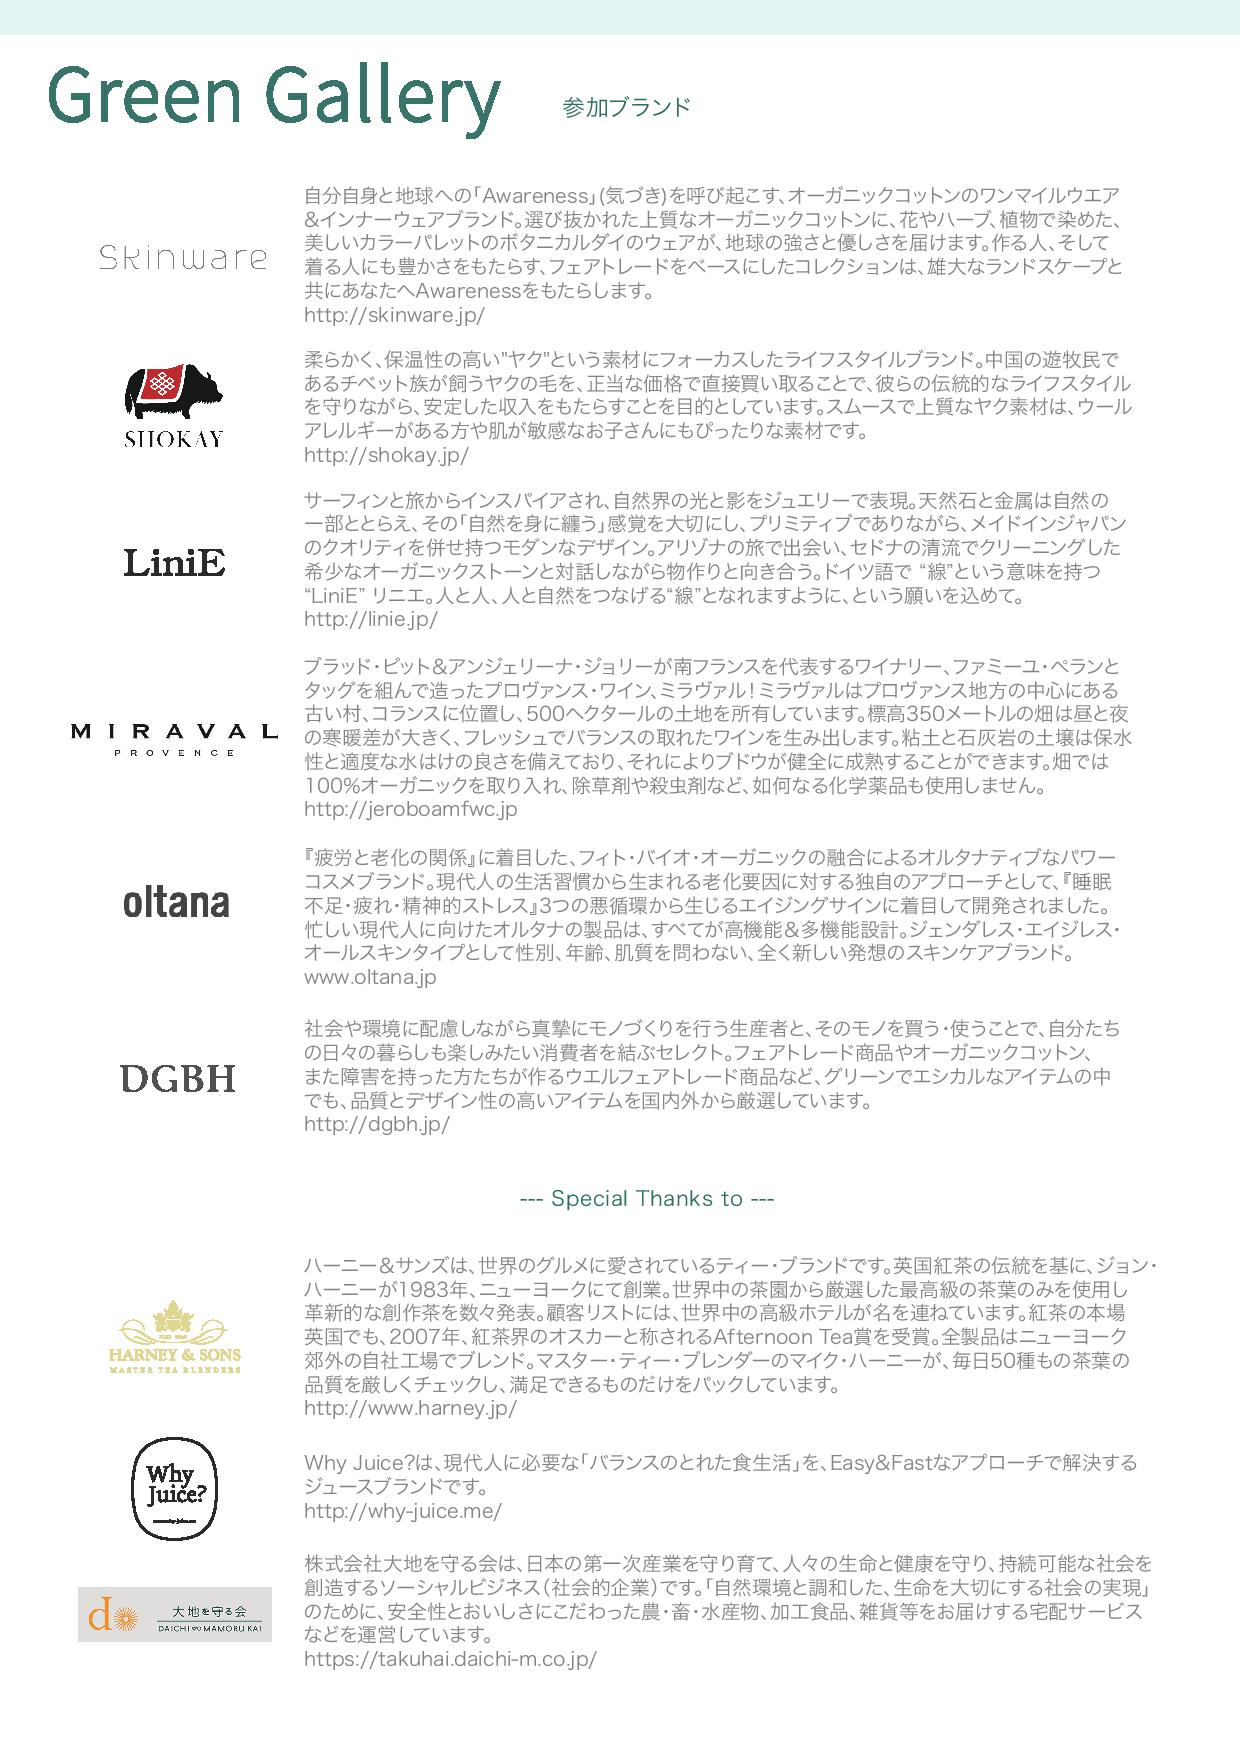 http://dgbh.jp/magazine/img/GG_Release_151130-page-002.jpg